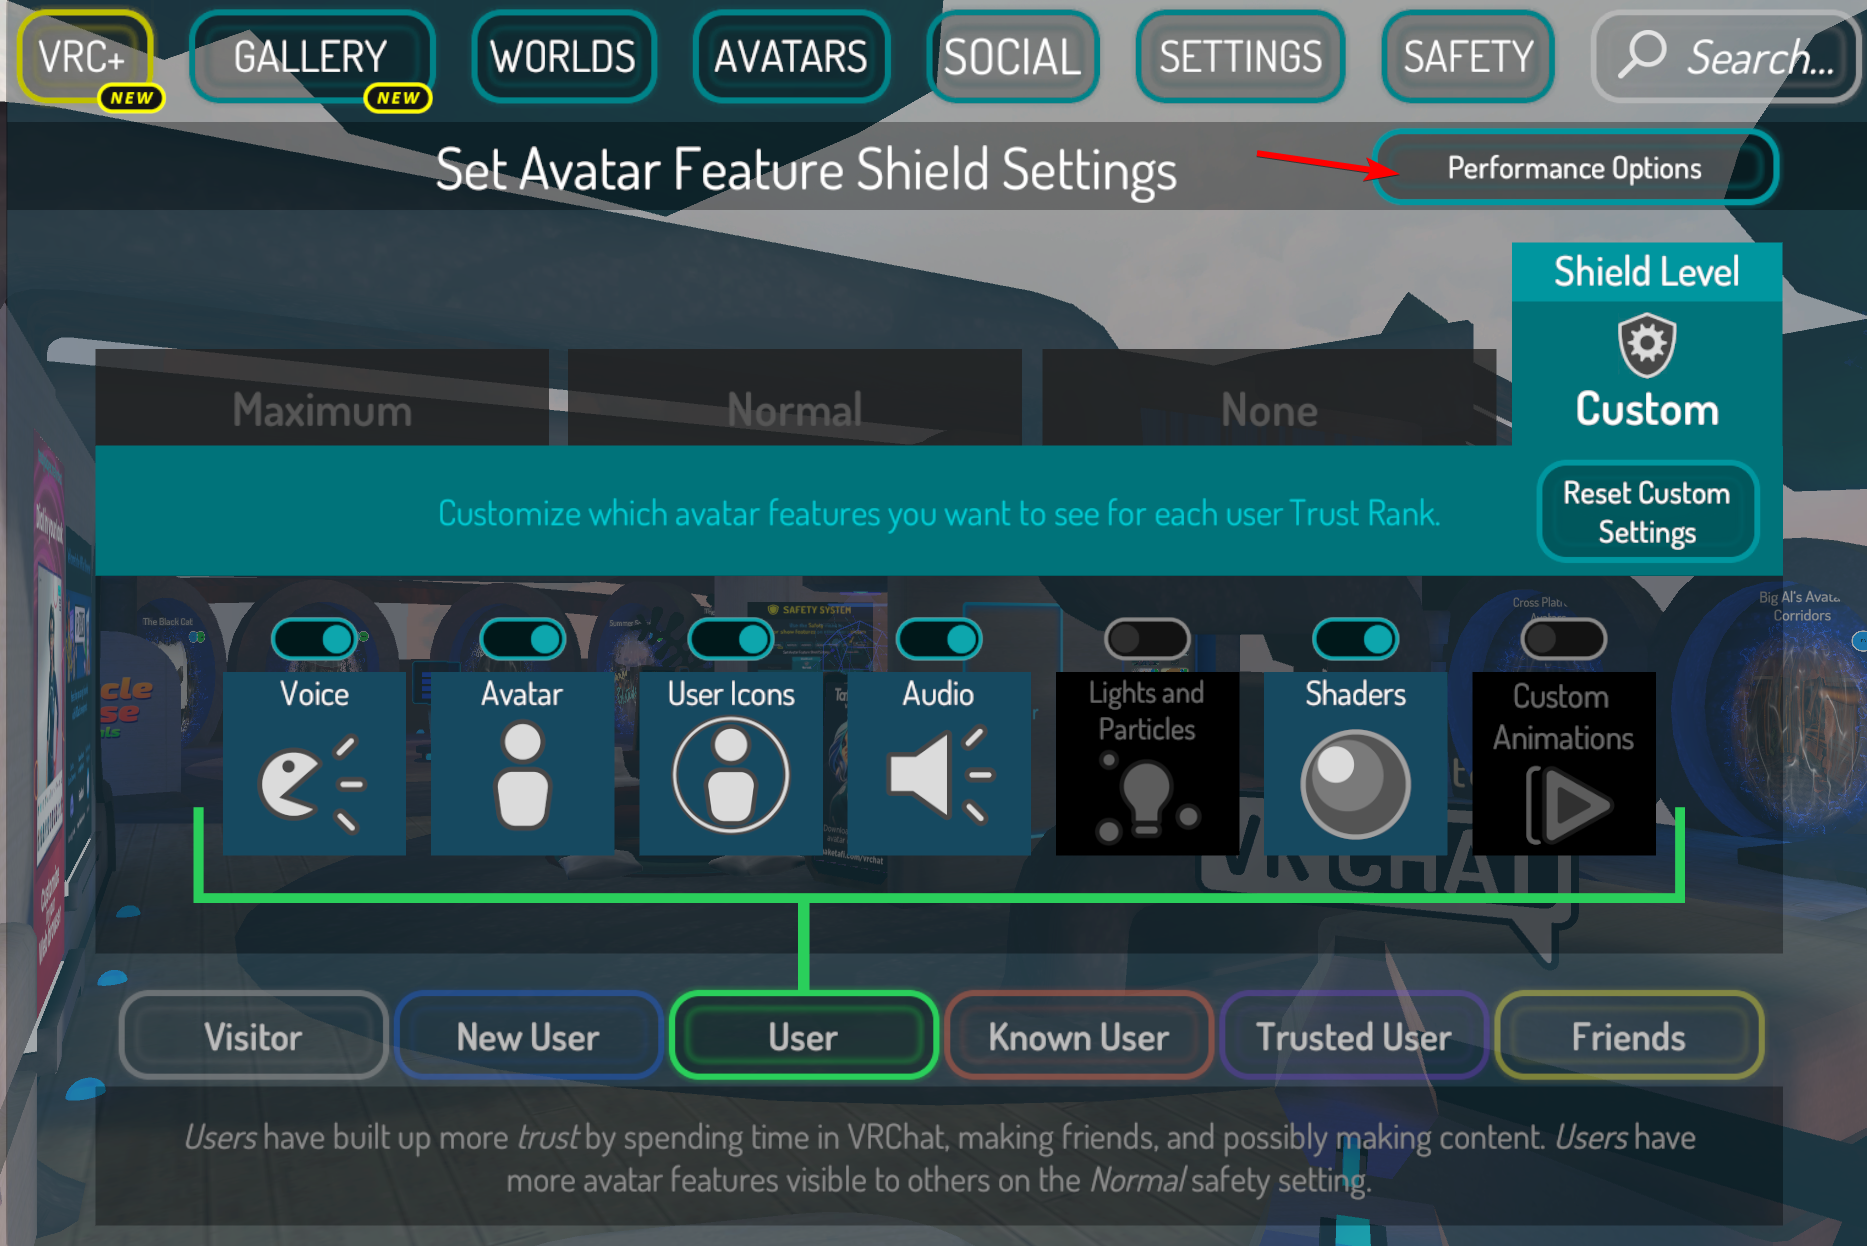 You can find the Performance Options button in the top right.